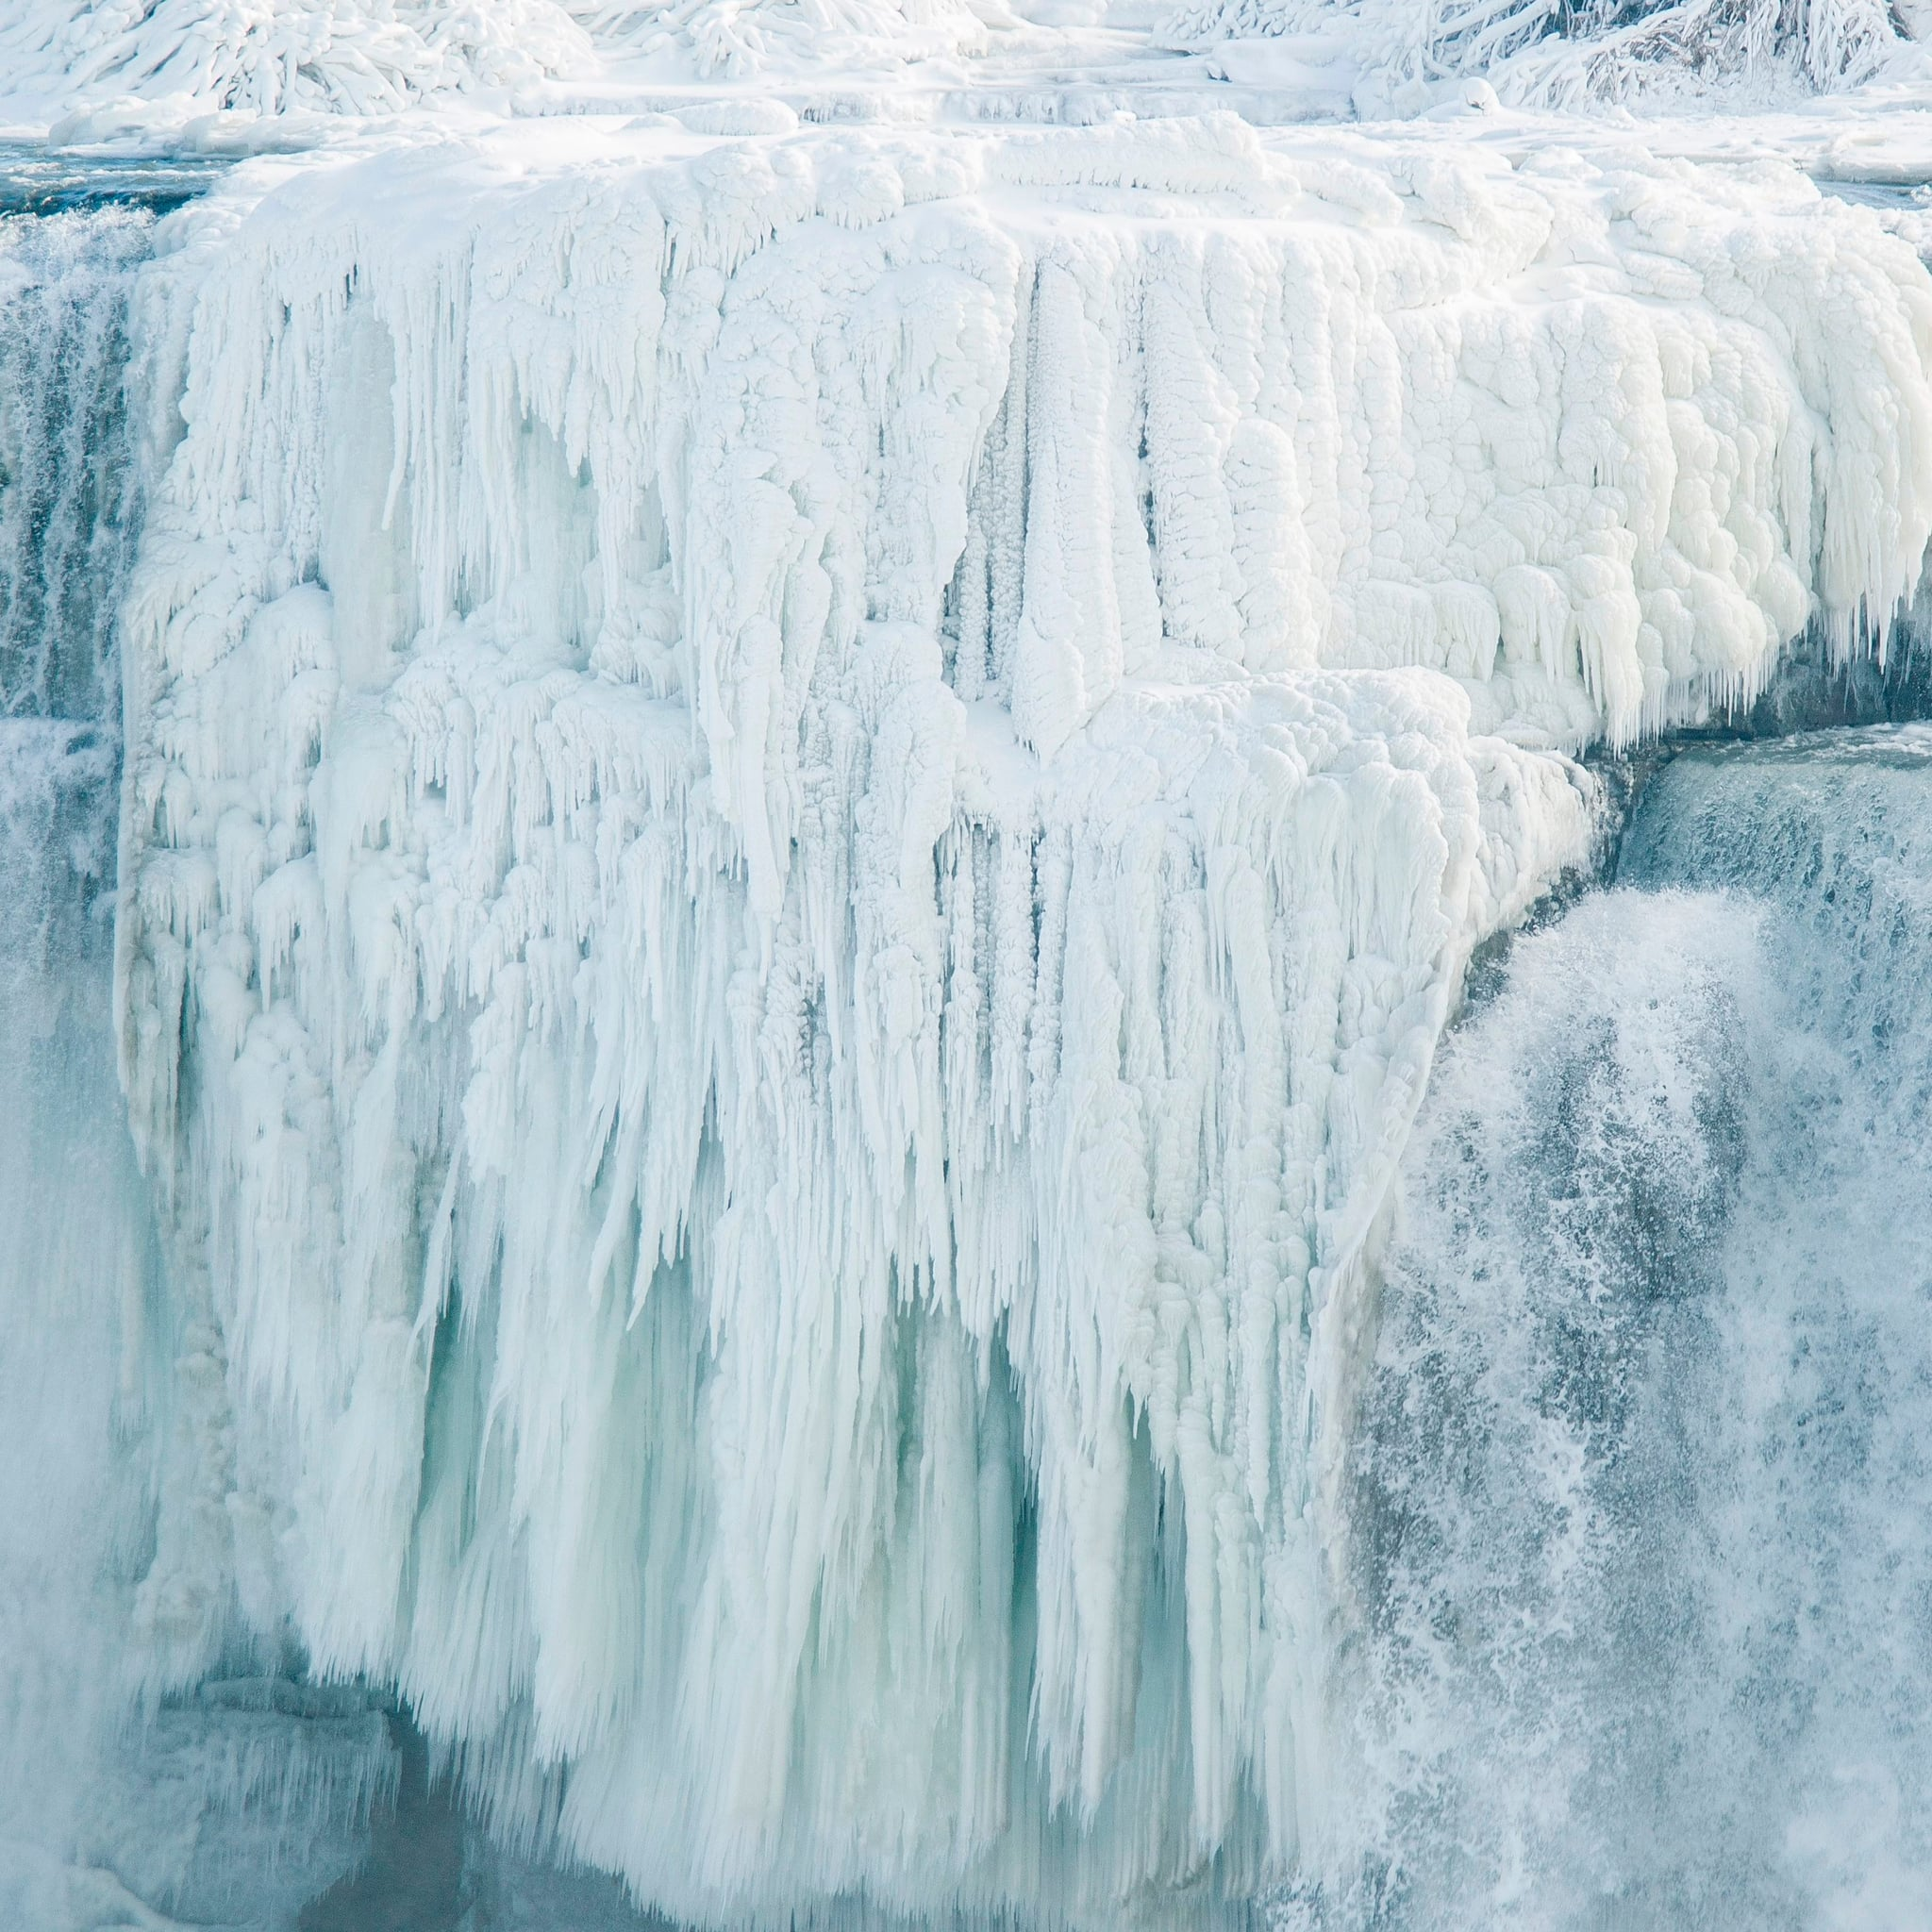 Niagara Falls Snow Photos: The Waterfalls Have